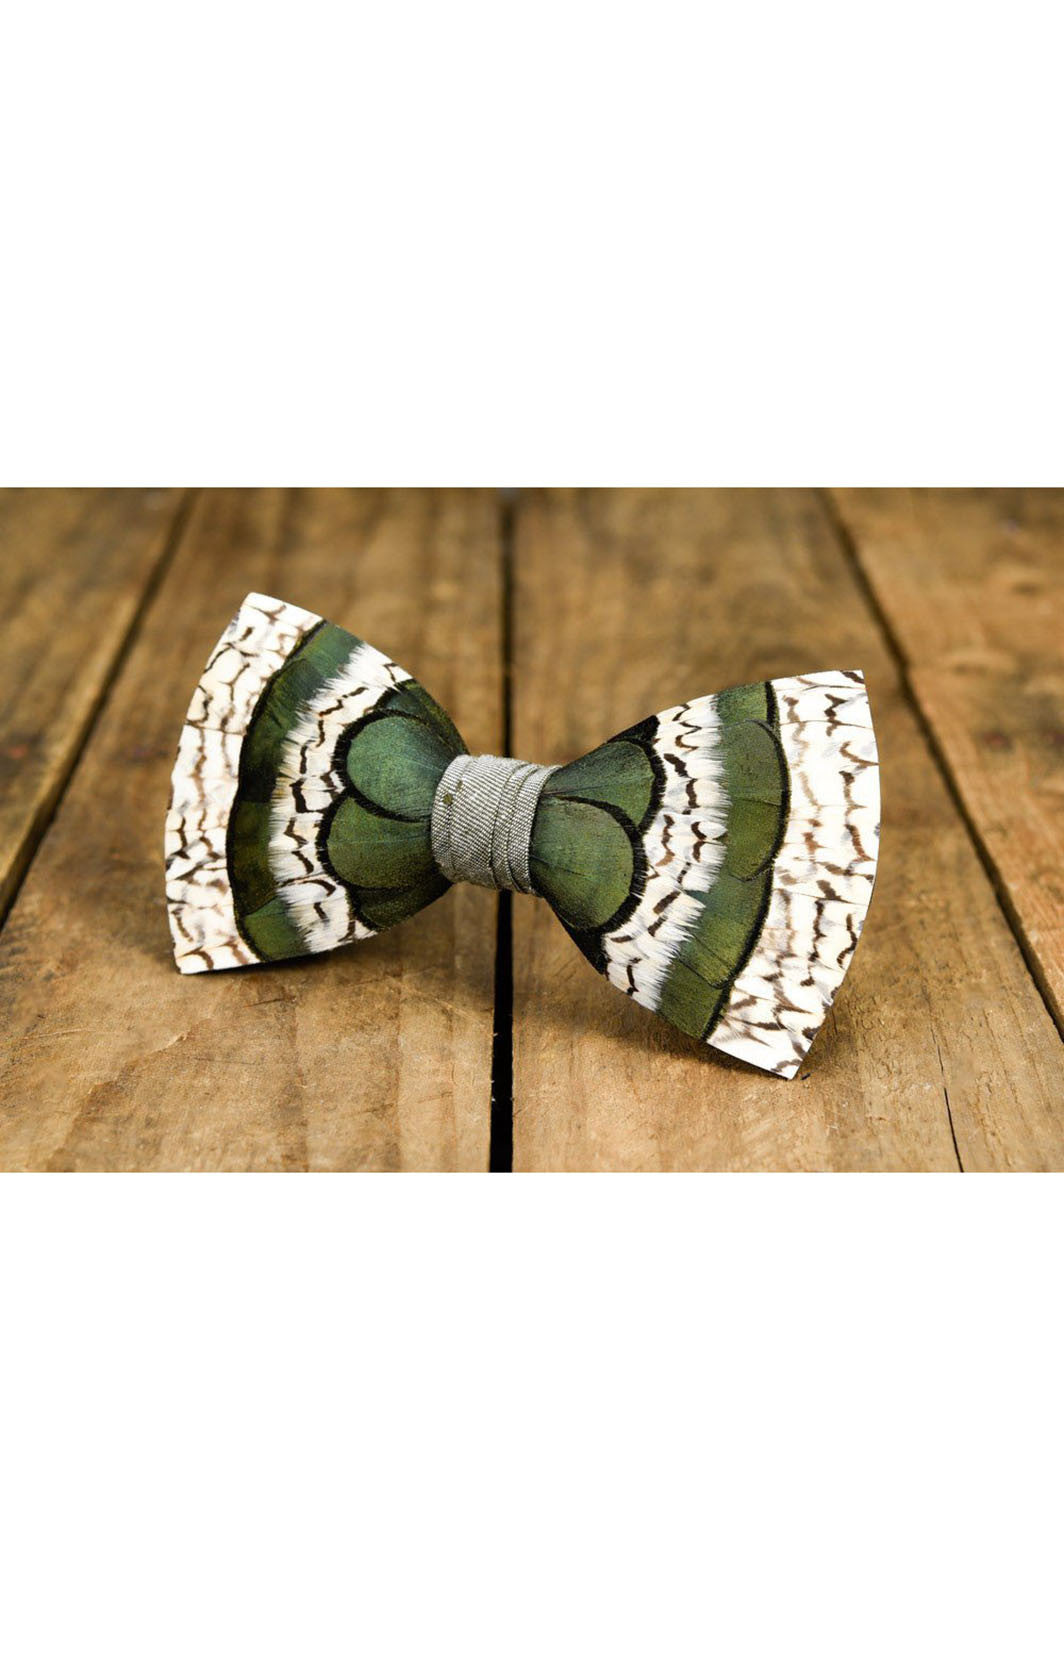 bobwhite and pheasent feathers, feather bow tie, green and white bow tie, unique bow tie, brackish bow ties